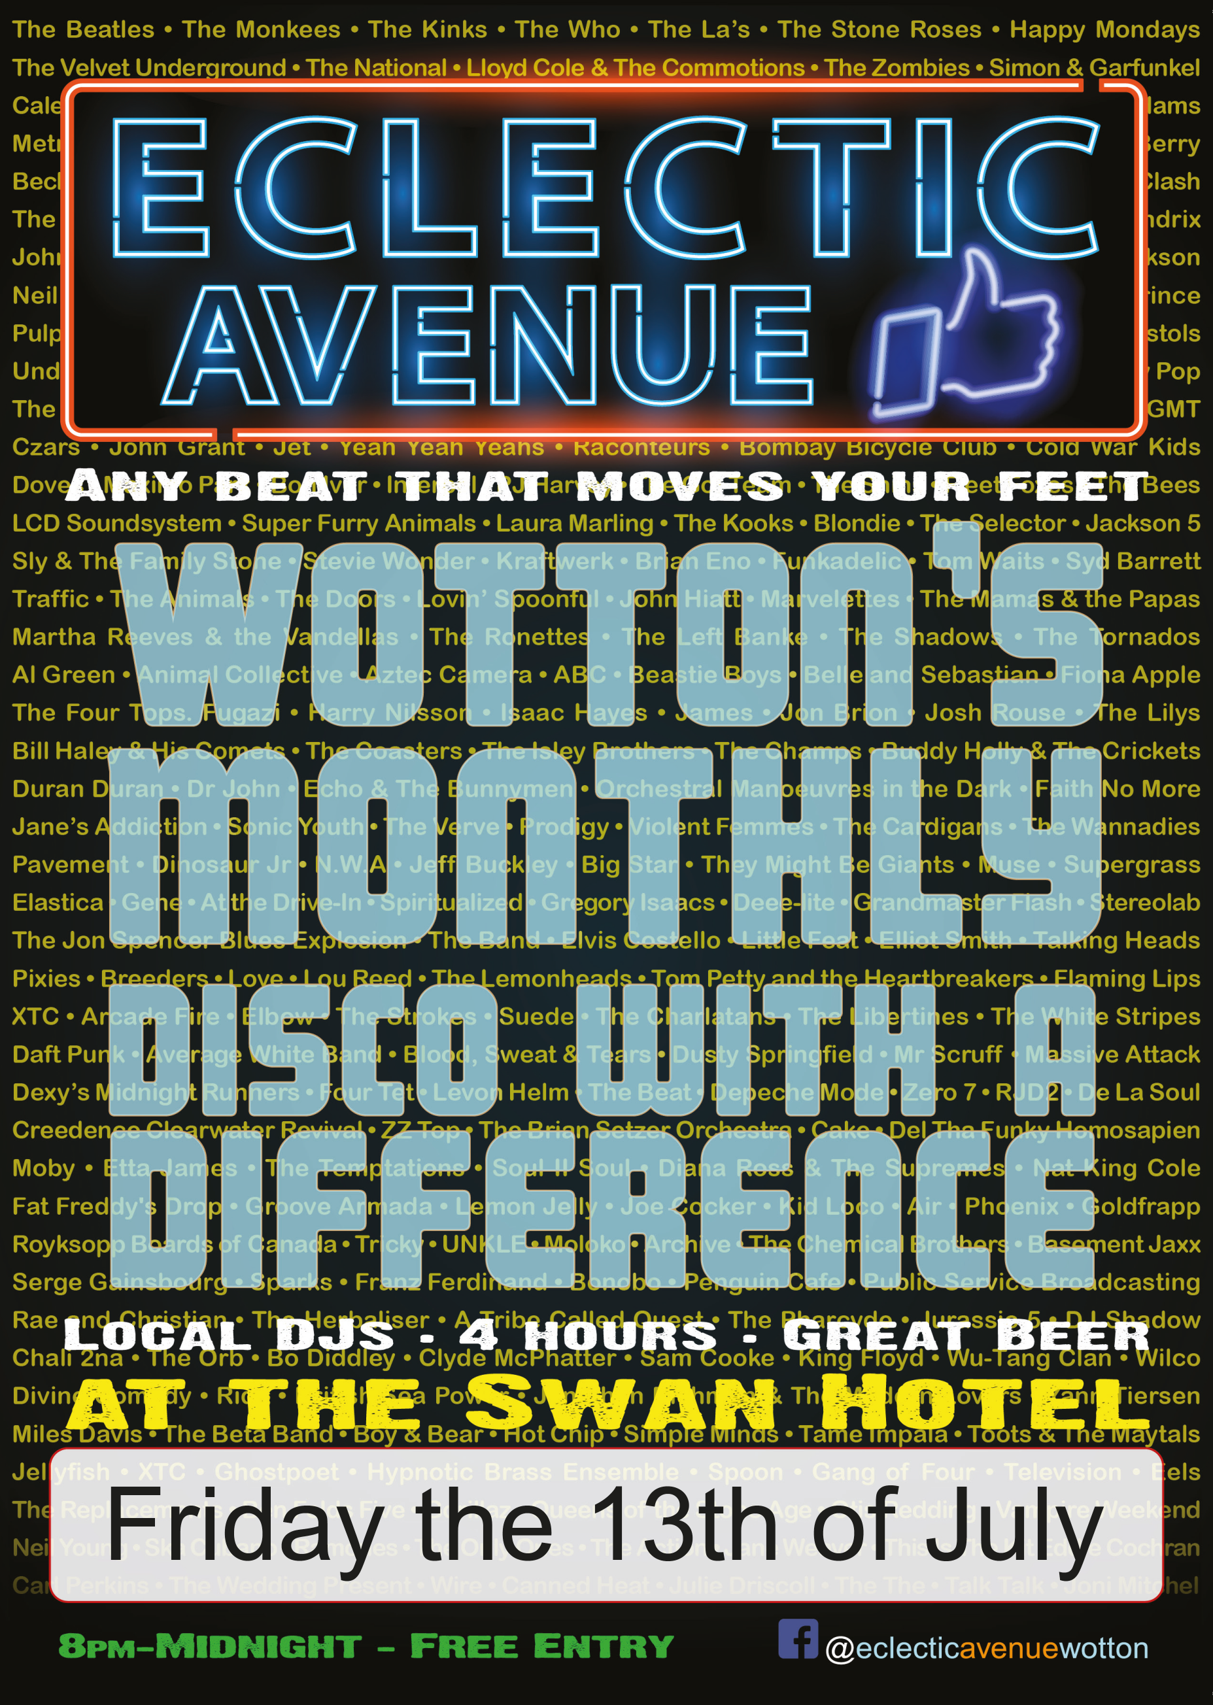 Eclectic Avenue Poster 13-07-18